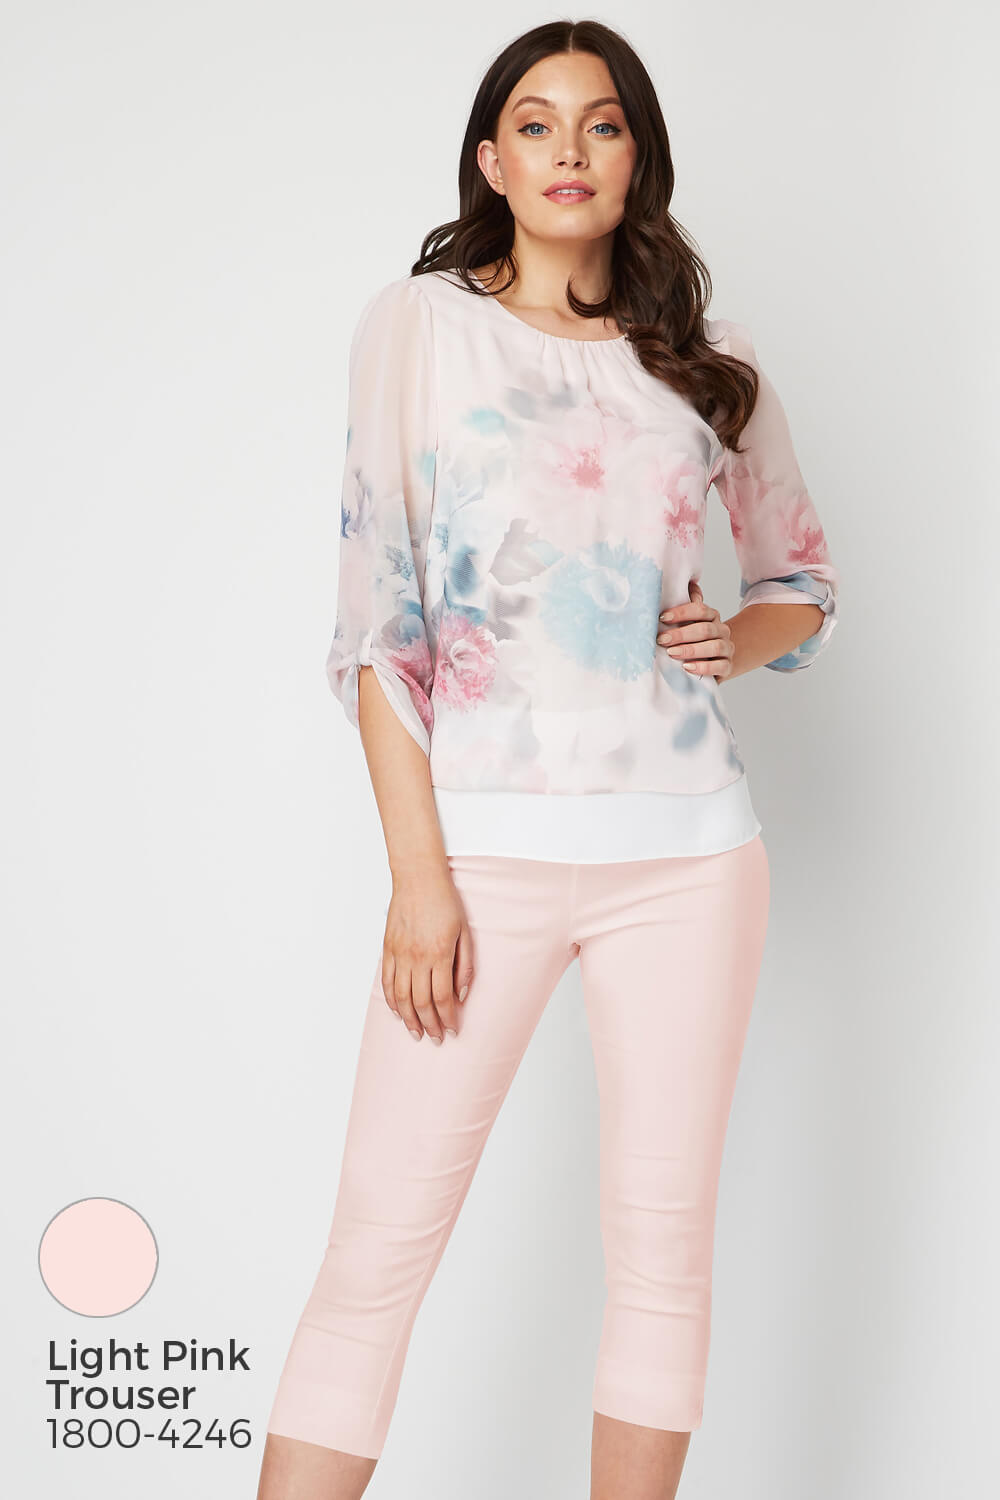 Roman-Originals-Womens-3-4-Length-Sleeve-Floral-Overlay-Top thumbnail 17